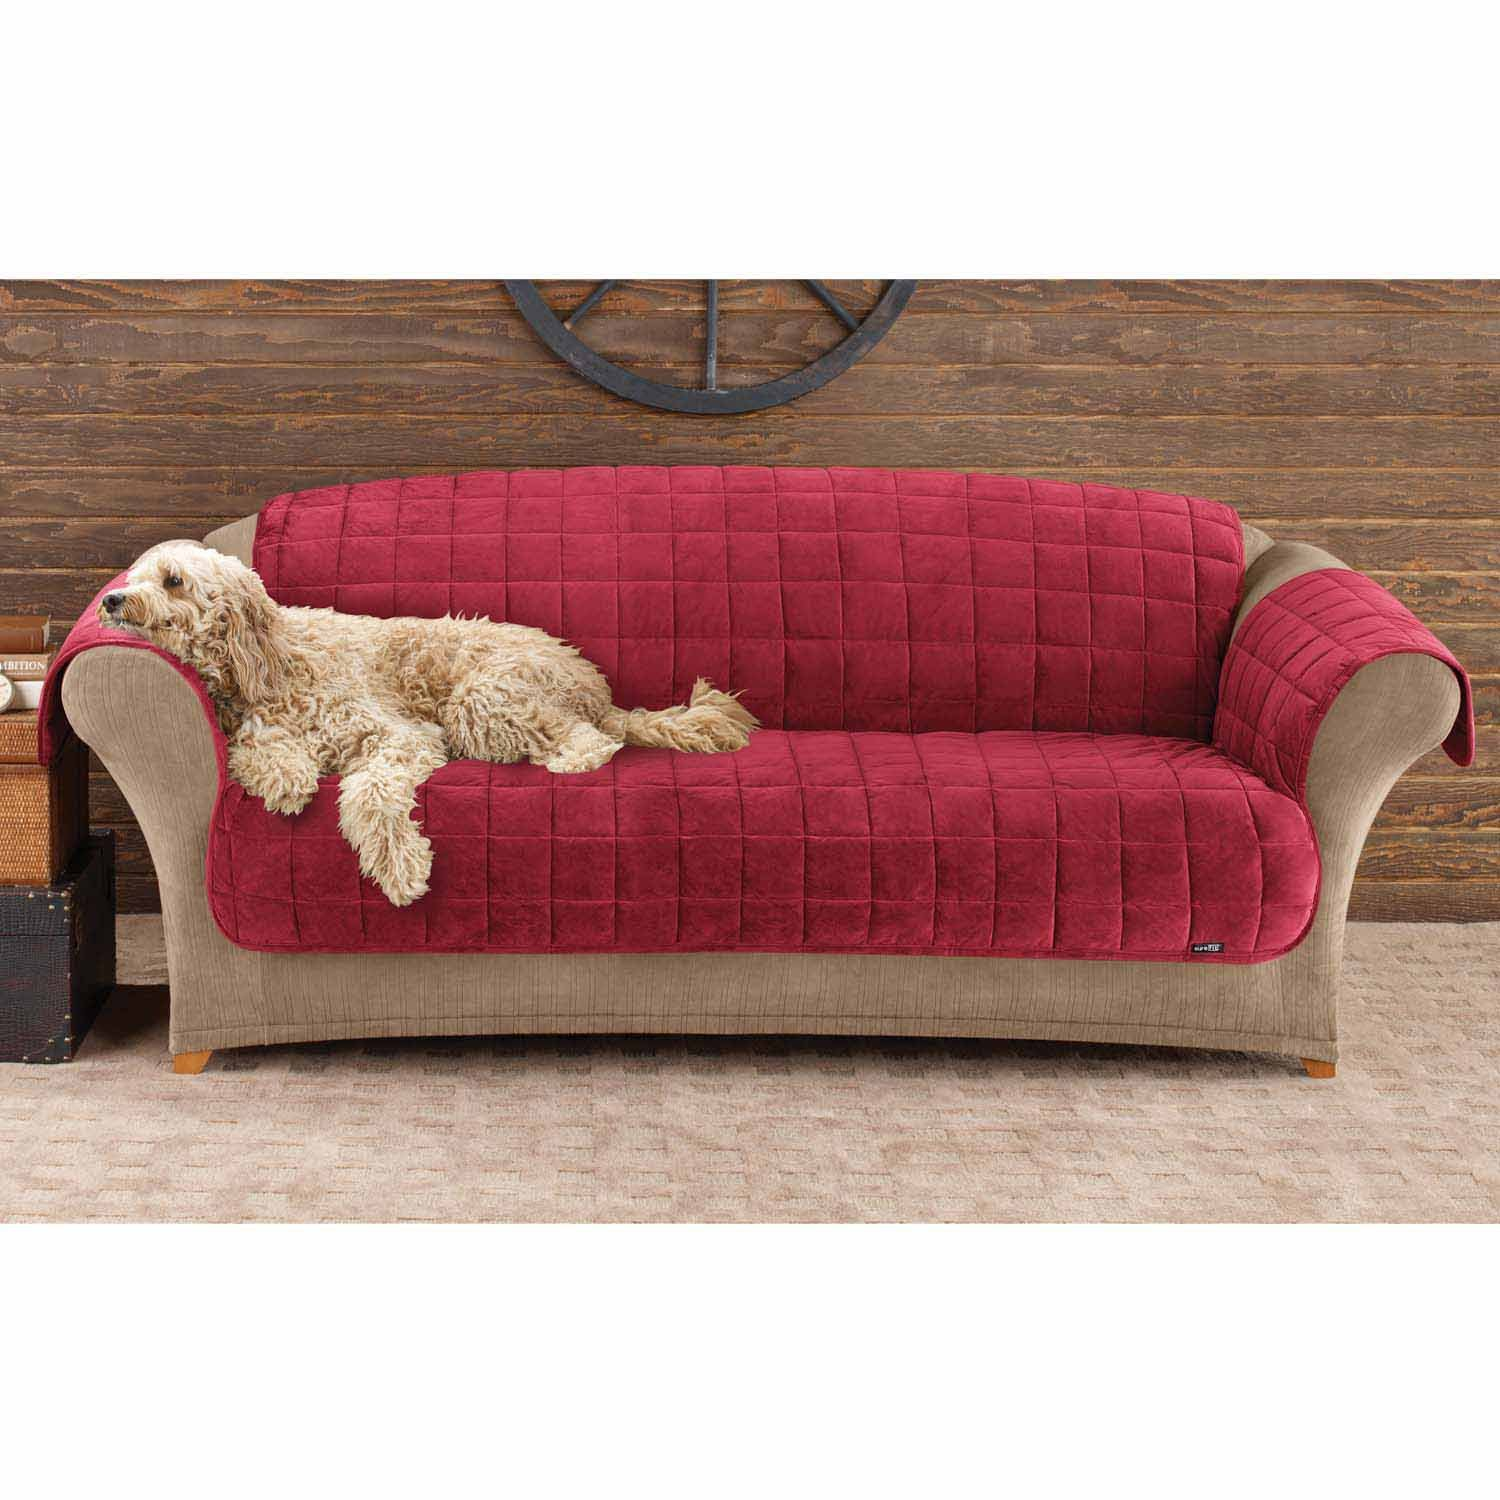 Amazon Sure Fit Deluxe Pet Cover Chair Slipcover Burgundy